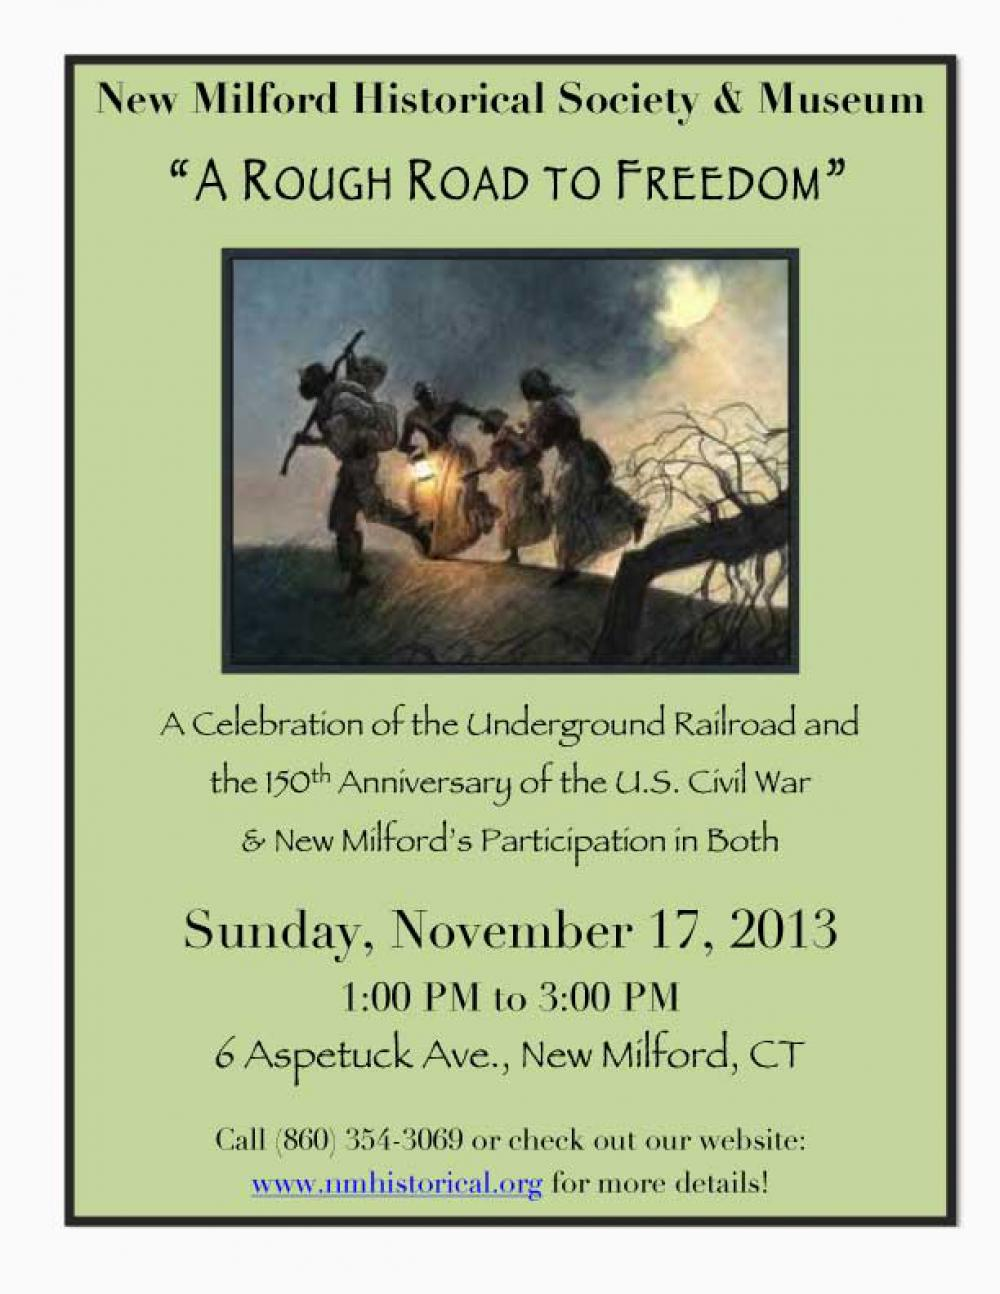 The New Milford Historical Society will hold a special day of events on Sunday, November 17th in fro